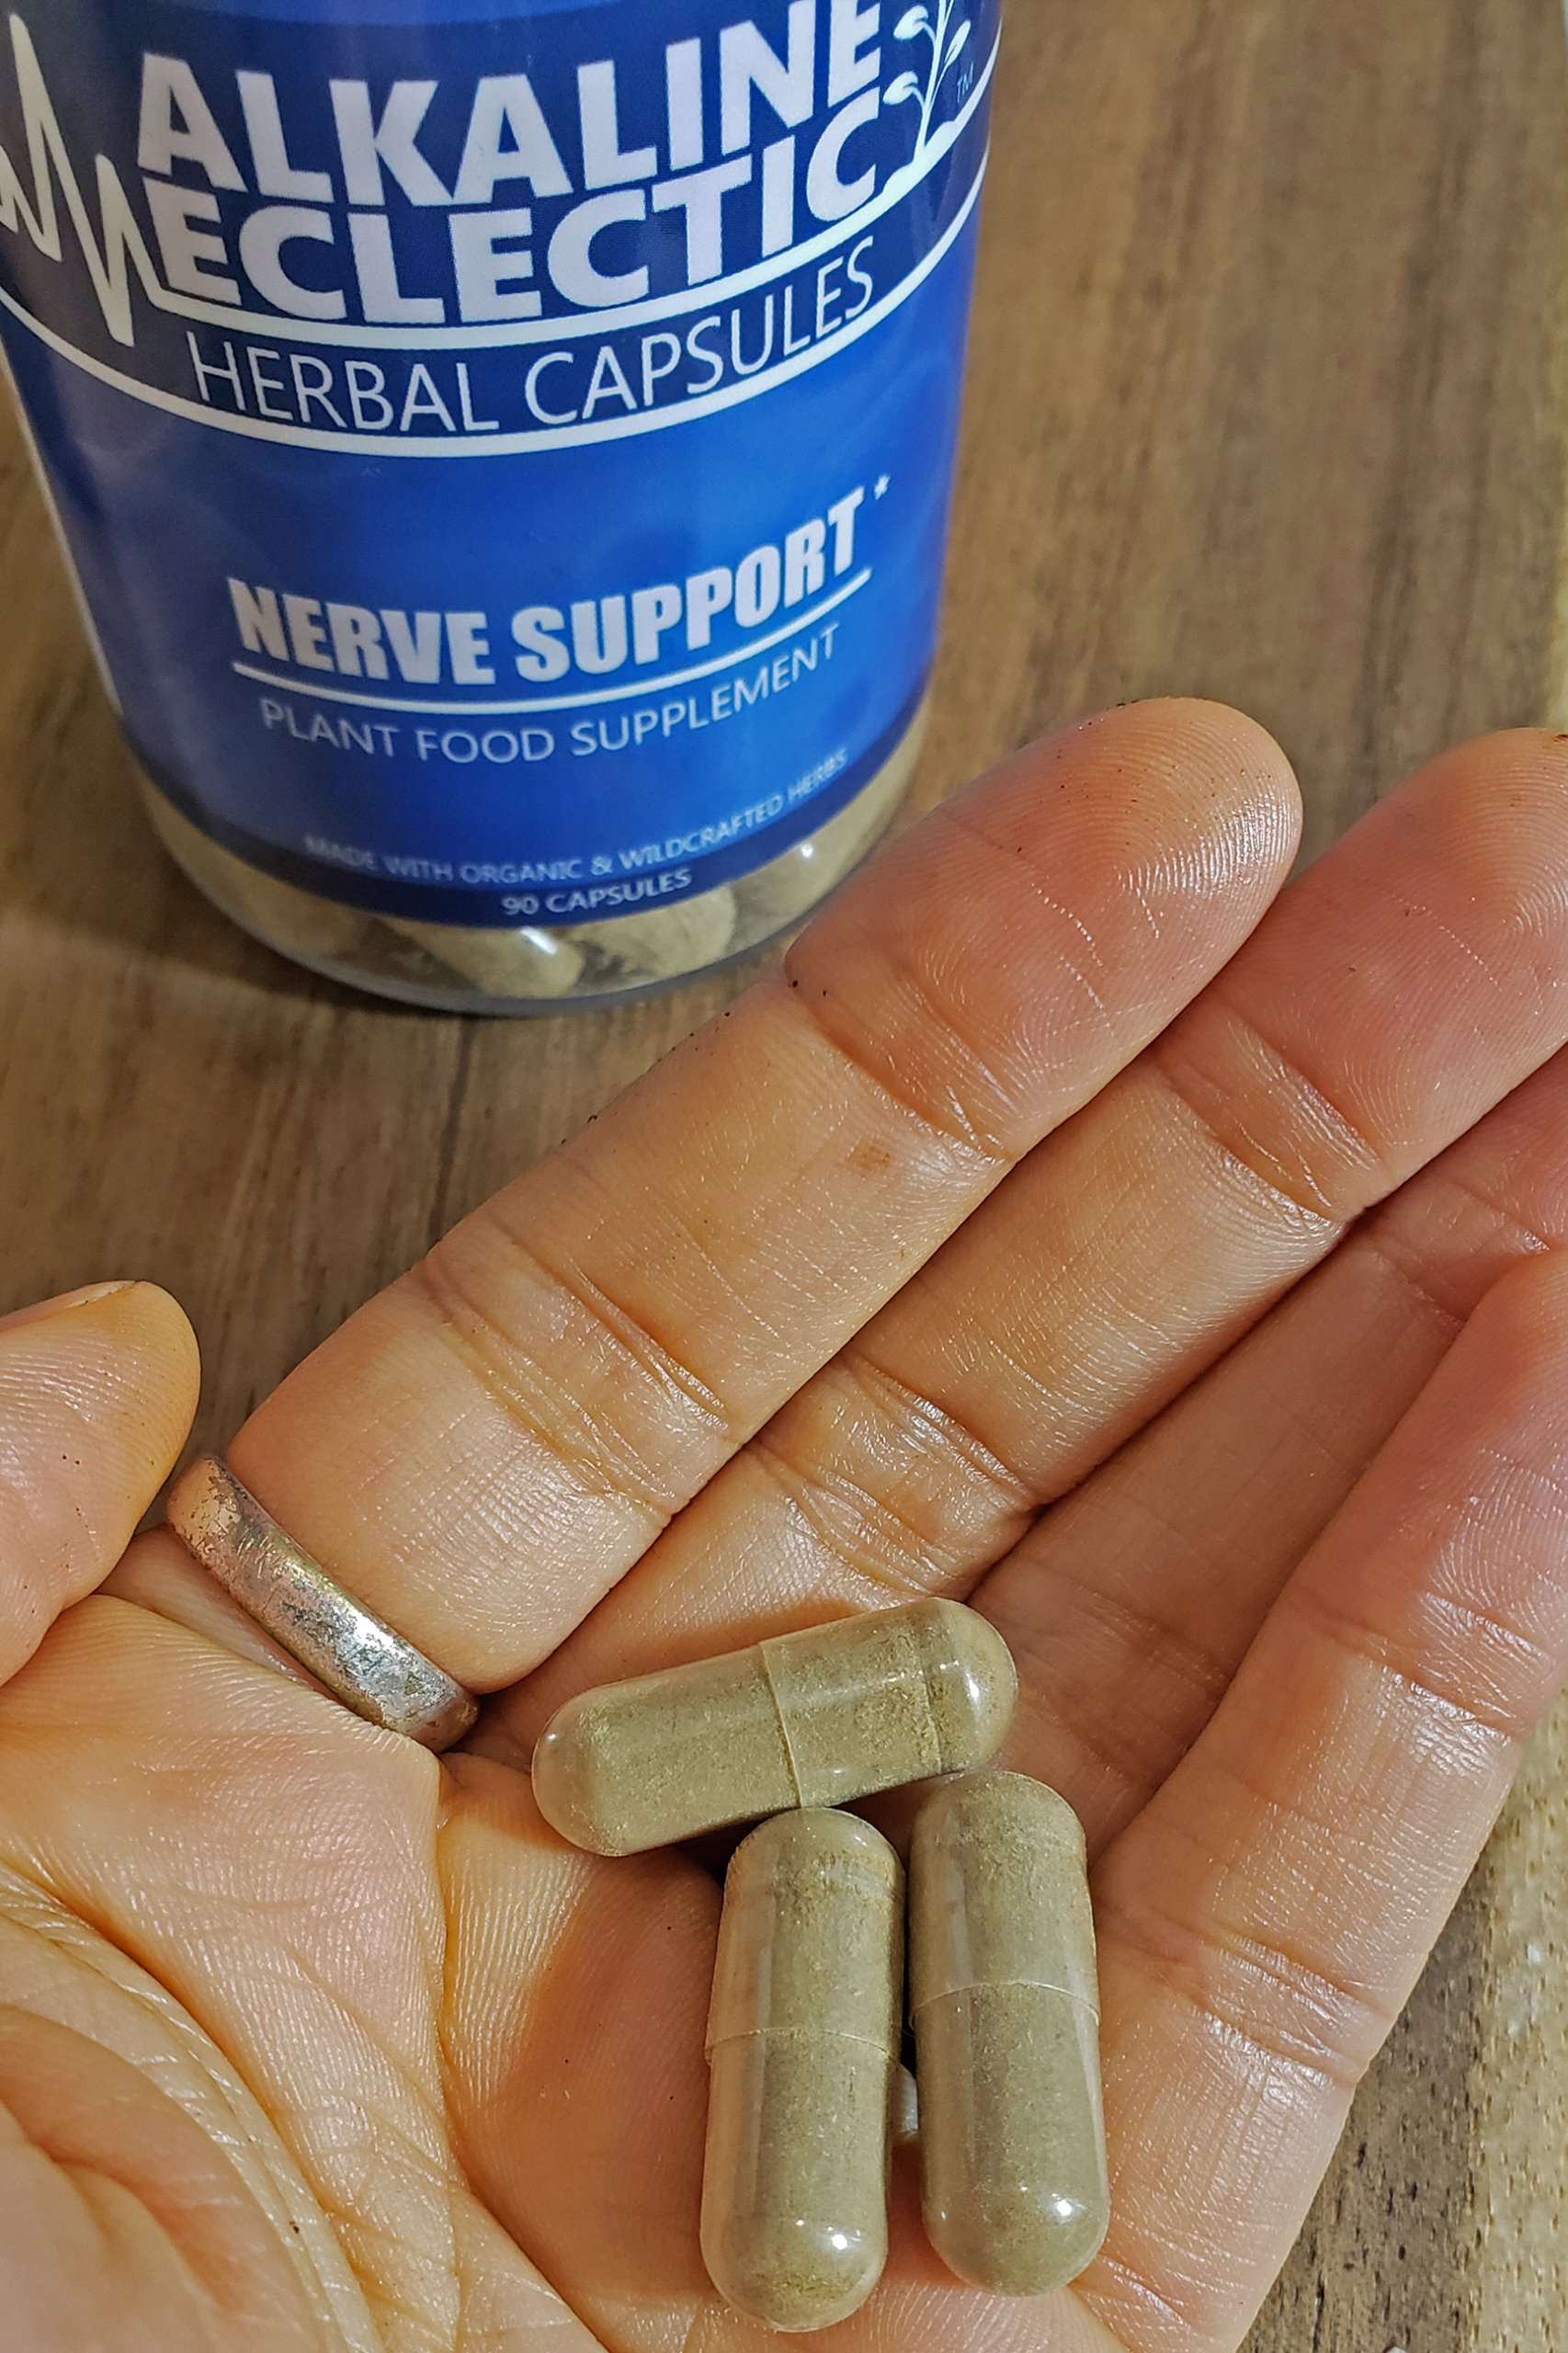 NERVE SUPPORT HERBAL CAPSULES